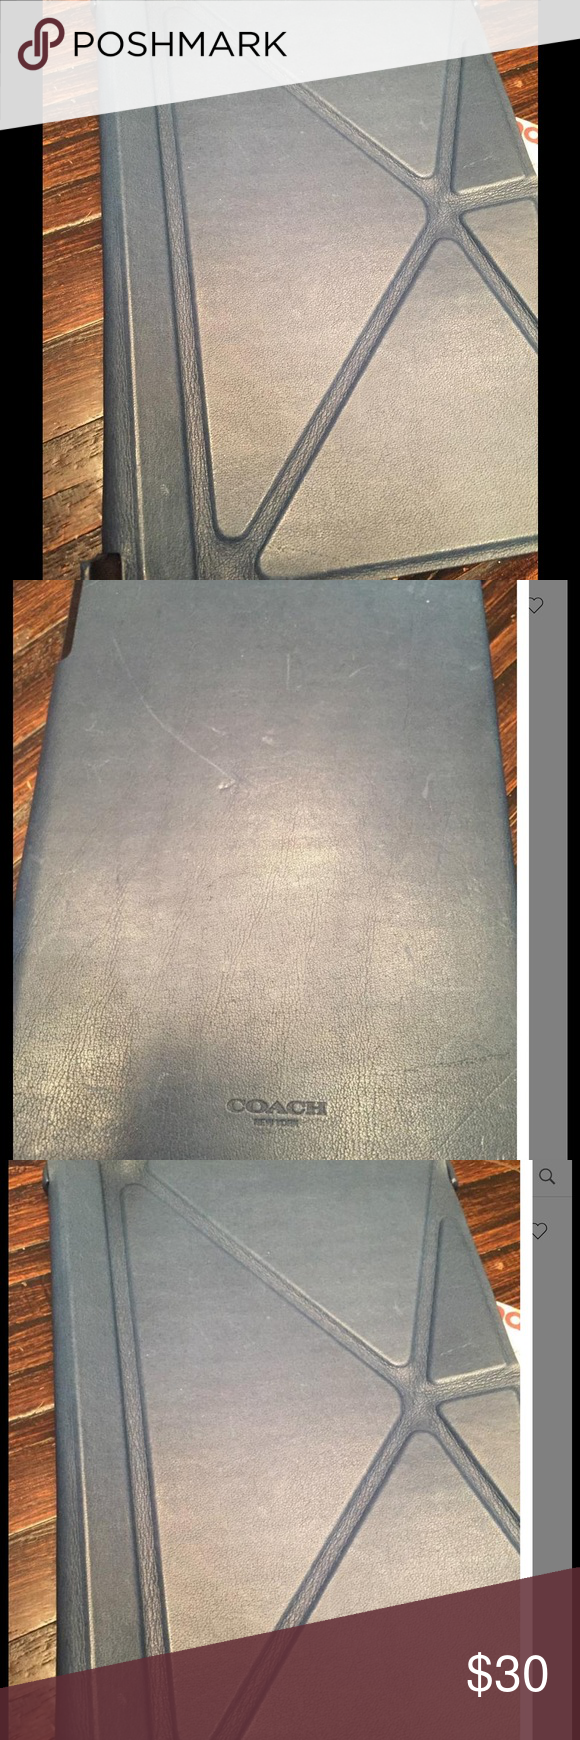 COACH Official Site Official page | BLEECKER ORIGAMI IPAD AIR CASE ... | 1740x580